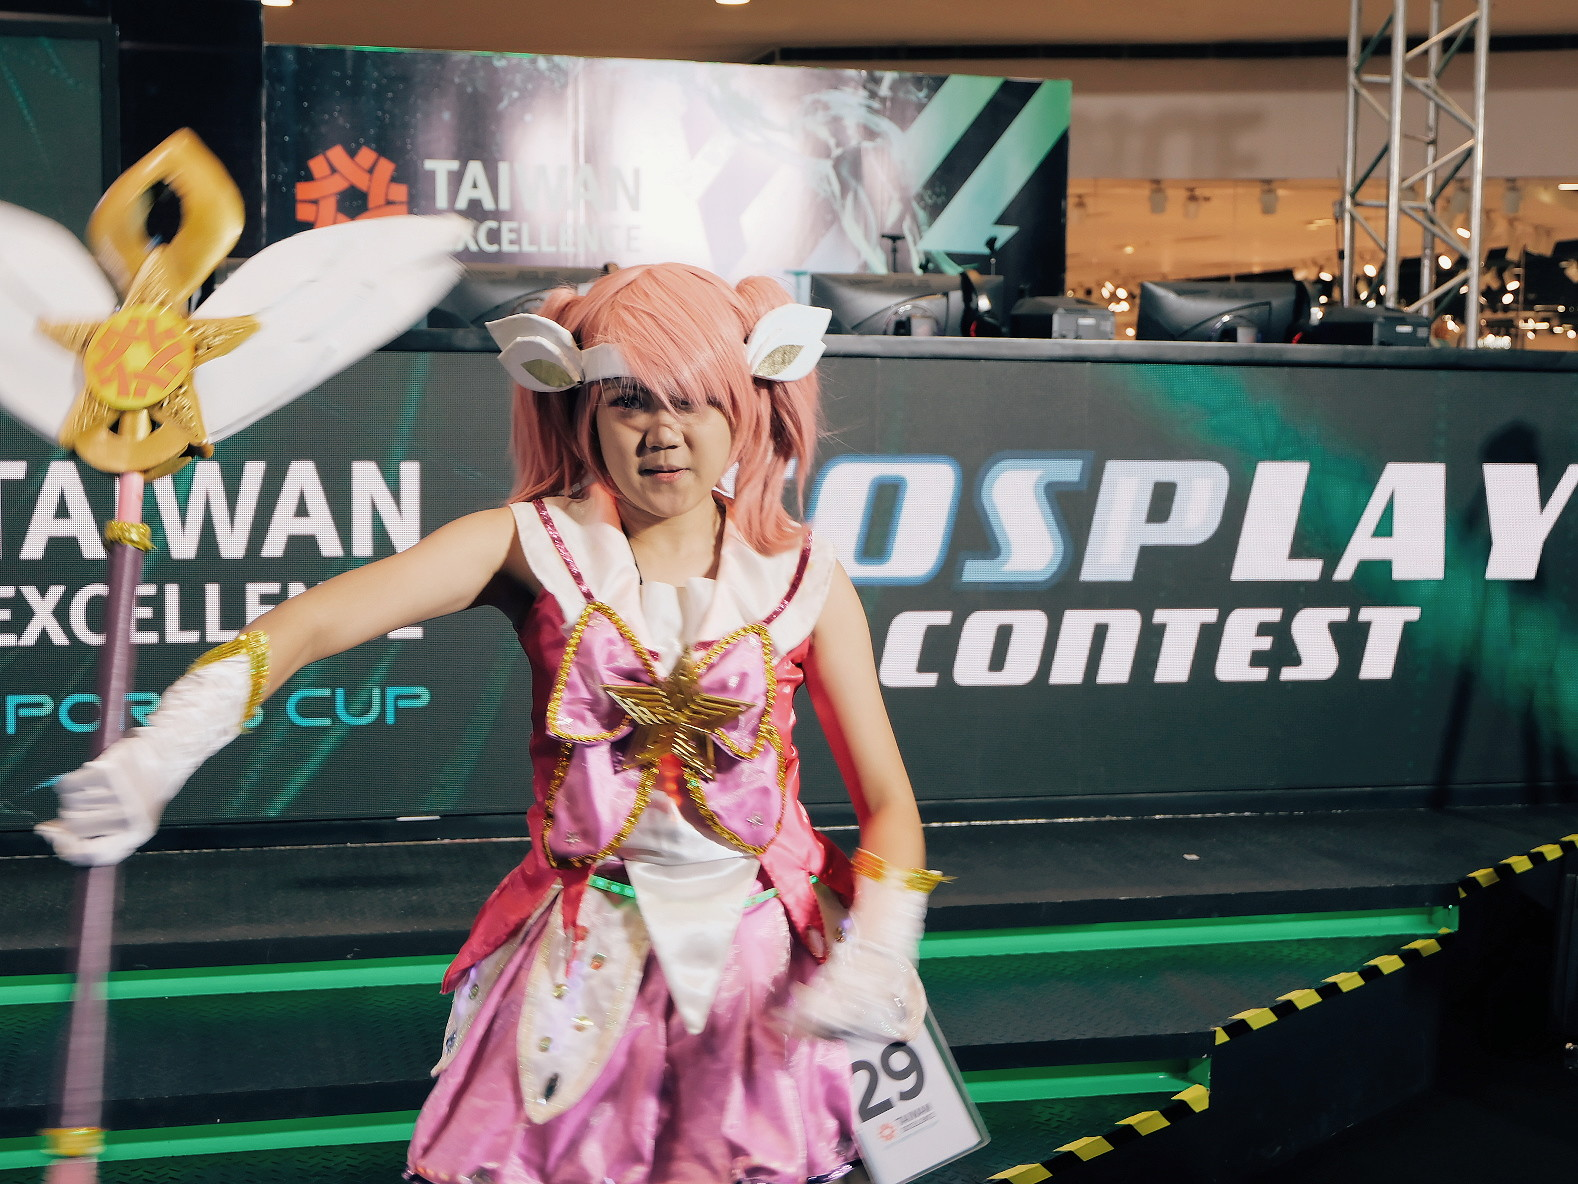 cosplay competition taiwan excellence